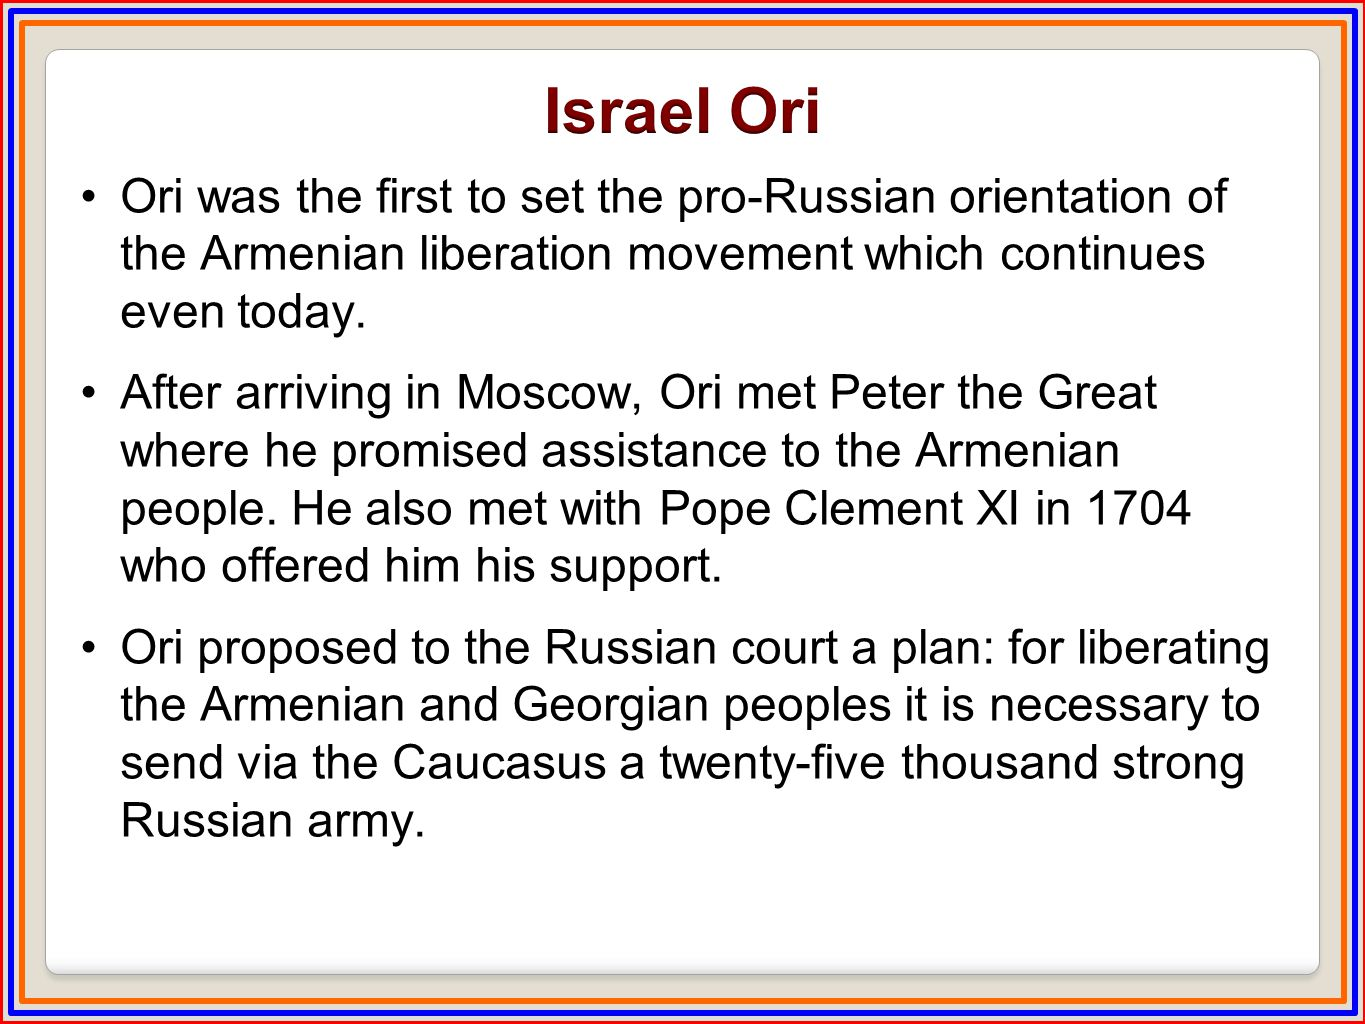 Ori was the first to set the pro-Russian orientation of the Armenian liberation movement which continues even today.